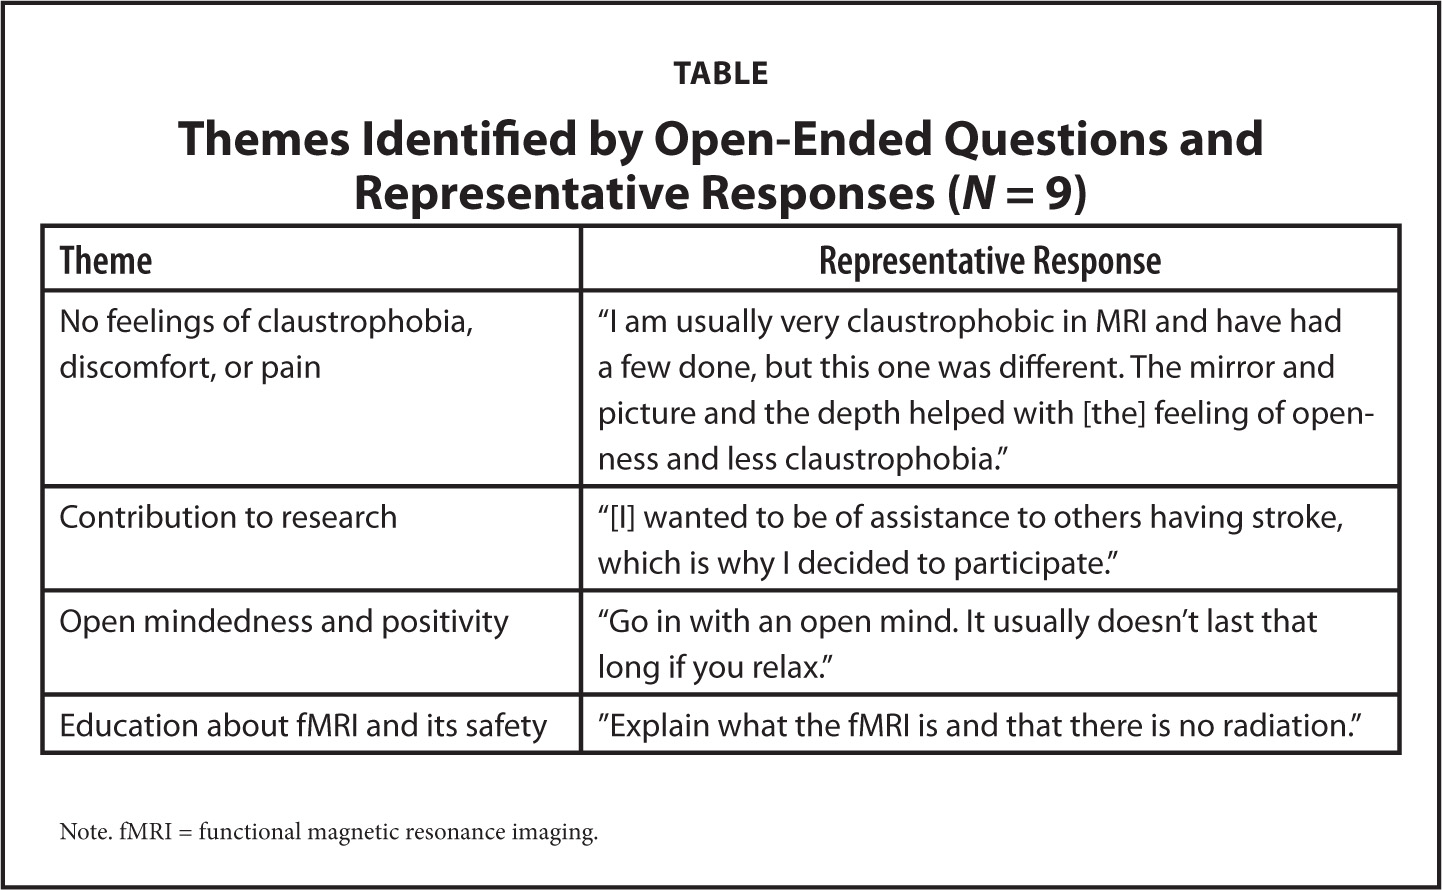 Themes Identified by Open-Ended Questions and Representative Responses (N = 9)